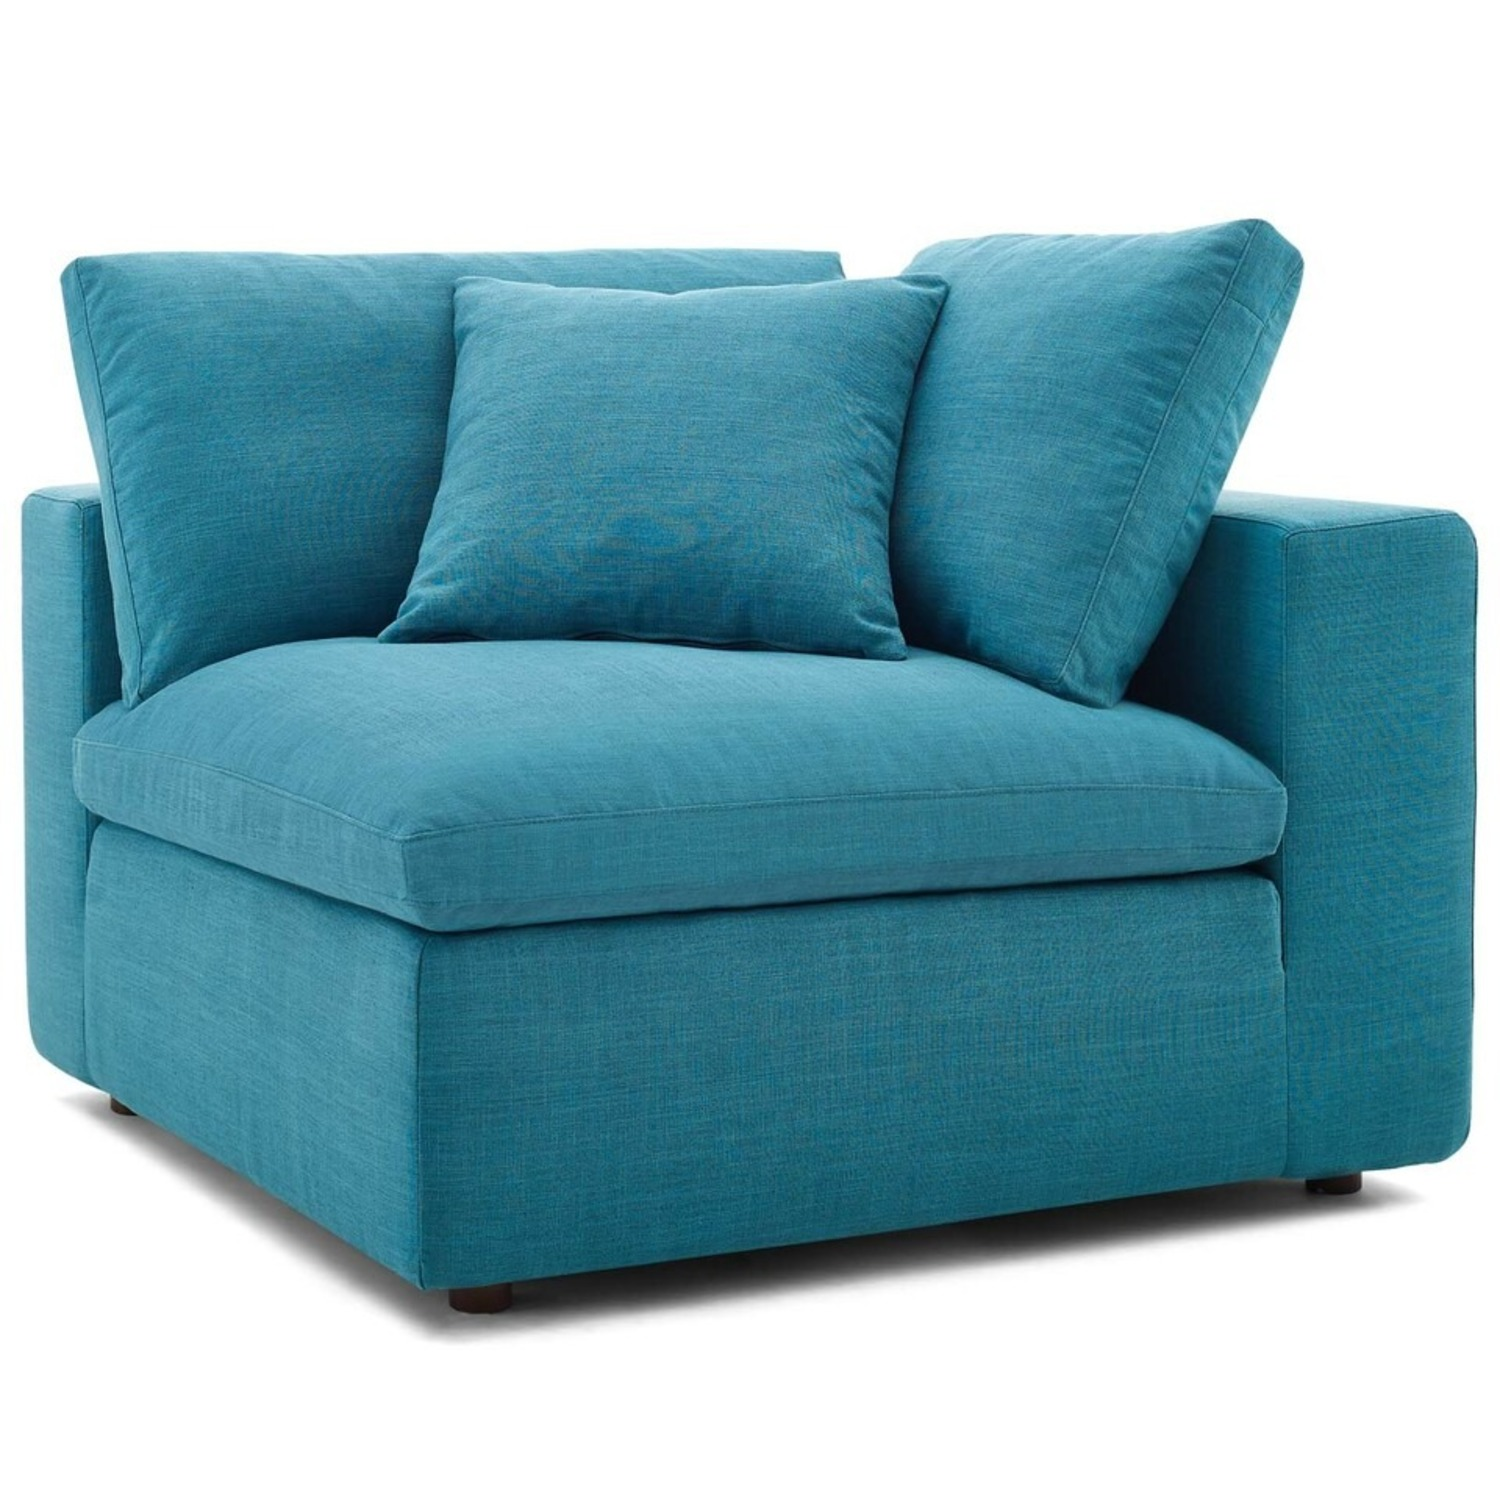 4-Piece Sectional In Teal Polyester & Linen Fabric - image-5